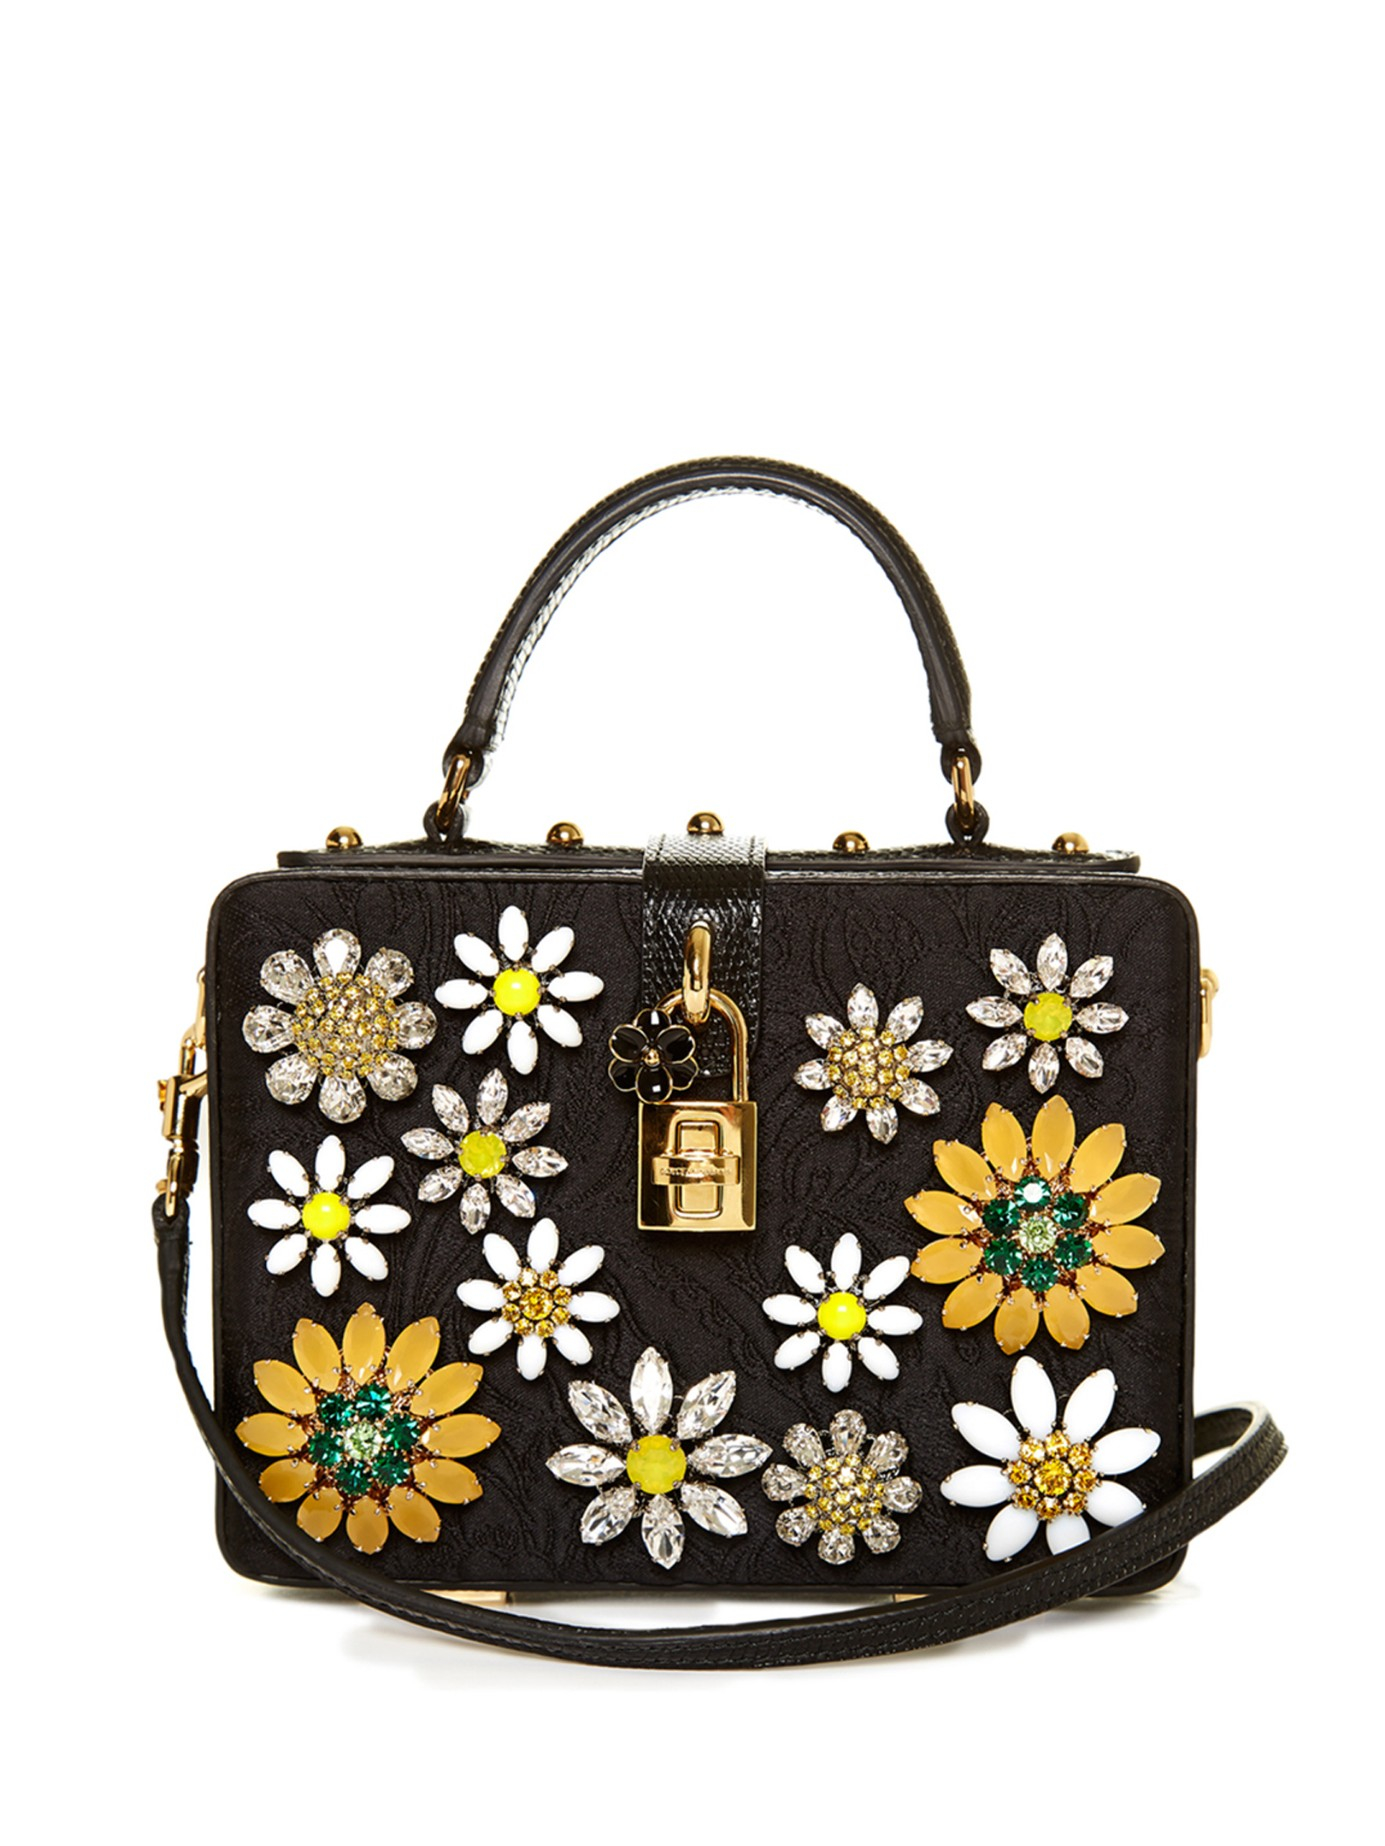 4fd4e4cb6ad8 Dolce   Gabbana Dolce Flower-embellished Brocade Box Bag in Black - Lyst